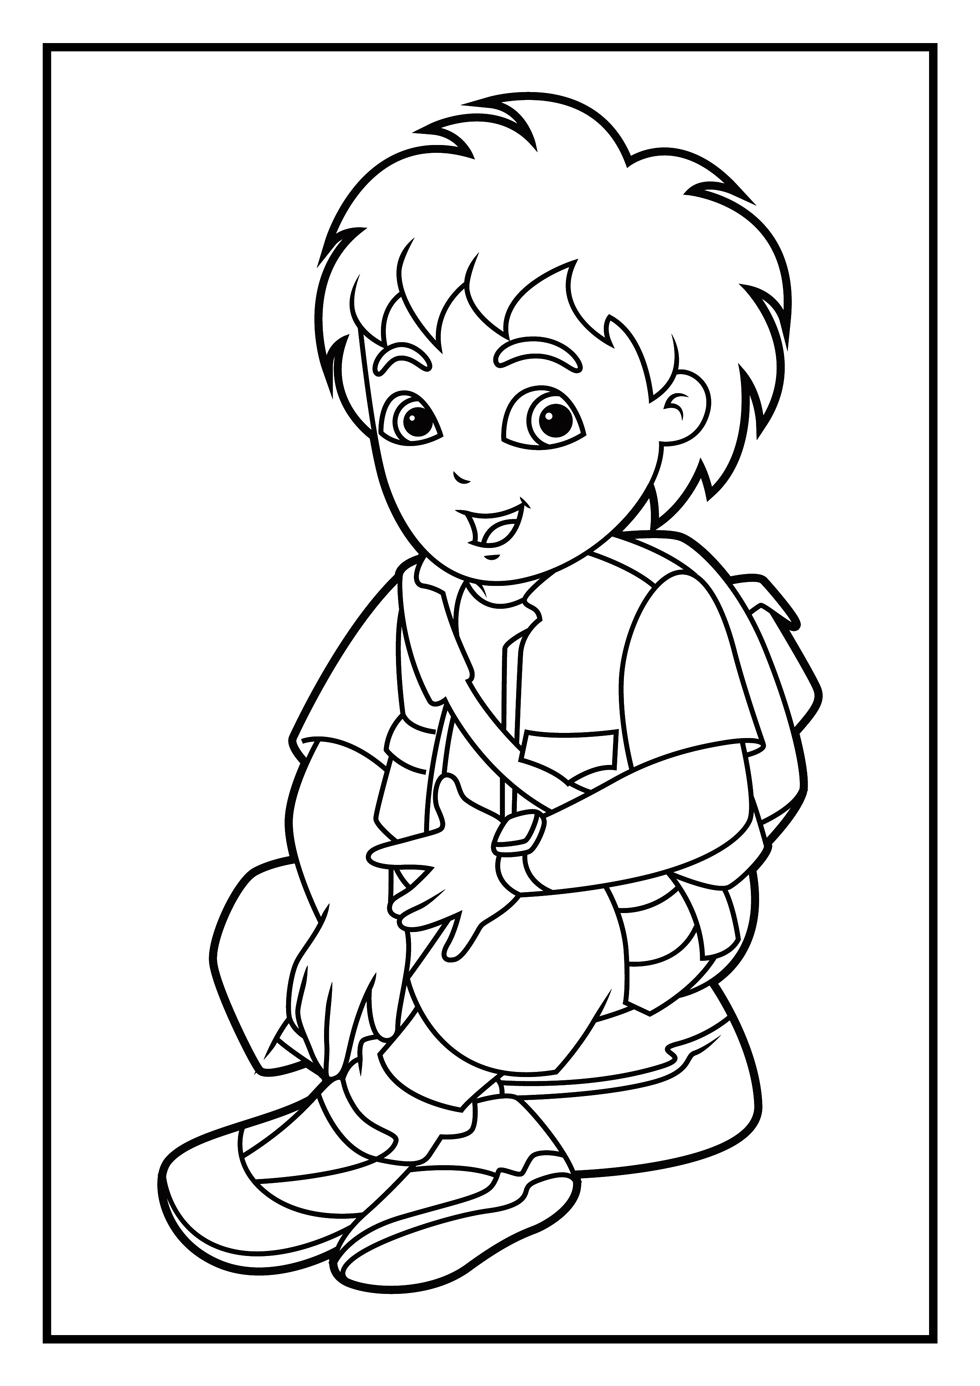 freee coloring pages diego - photo#7